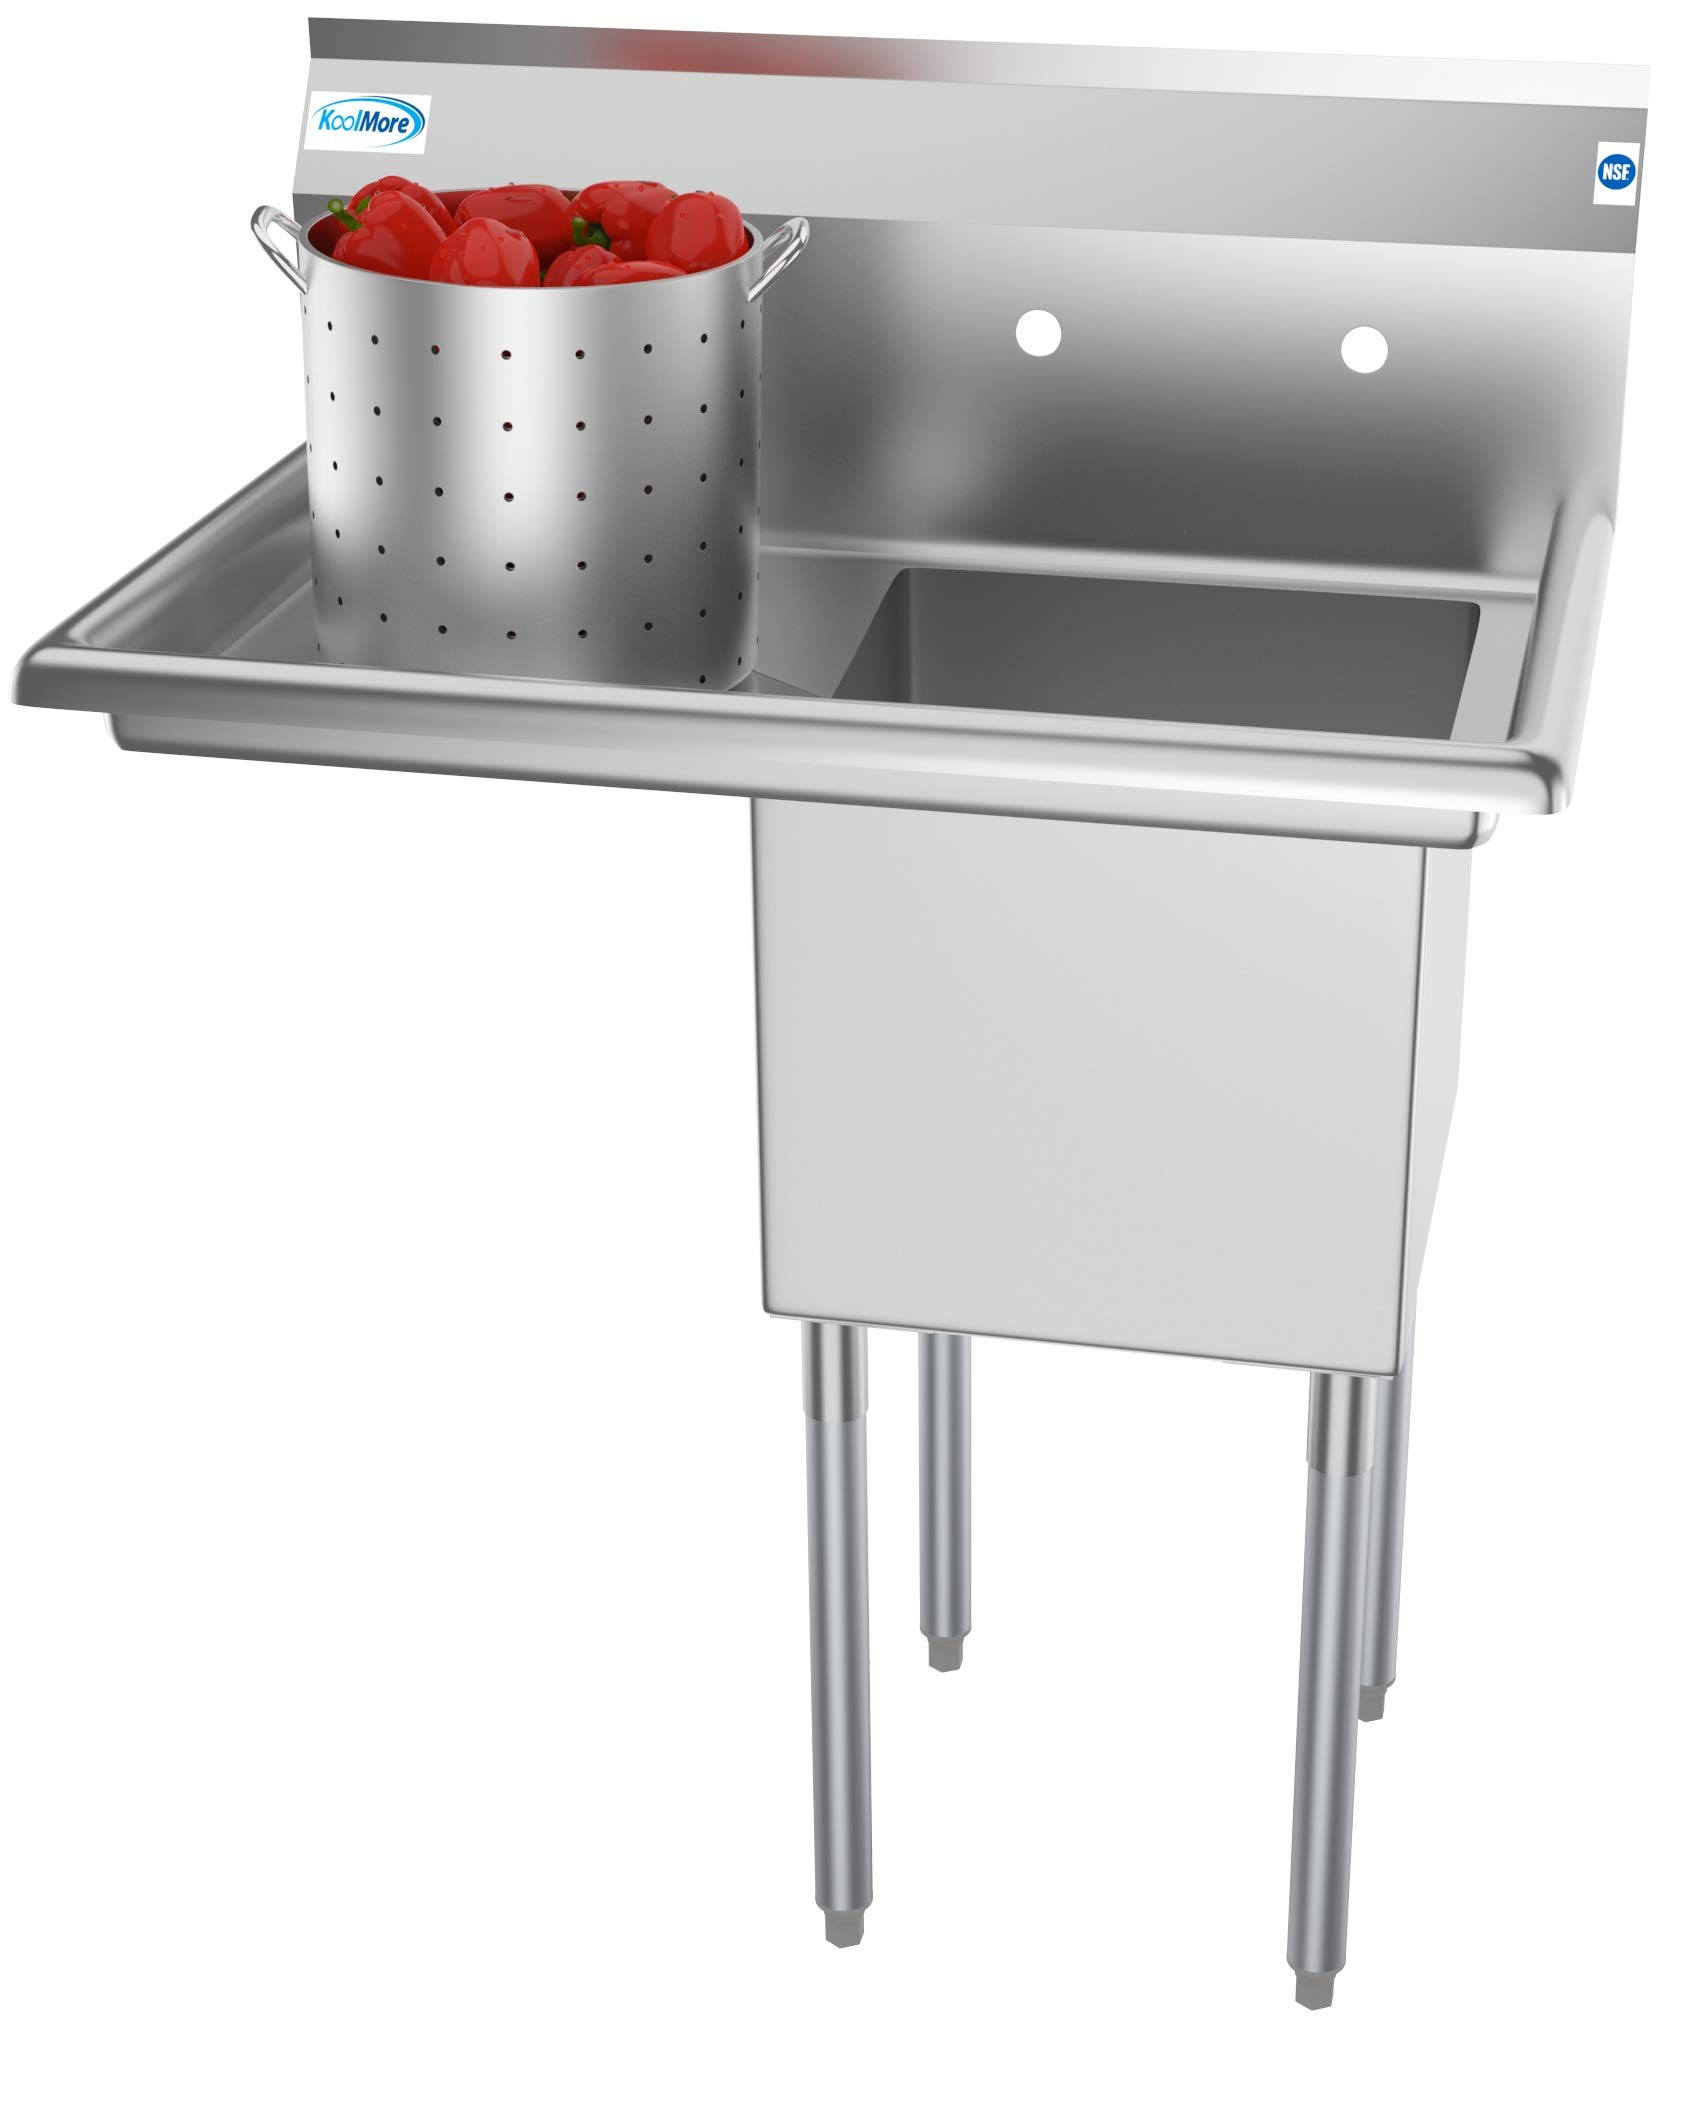 KoolMore 1 Compartment Stainless Steel NSF Commercial Kitchen Prep & Utility Sink with Drainboard - Bowl Size 15'' x 15'' x 12'', Silver by KoolMore